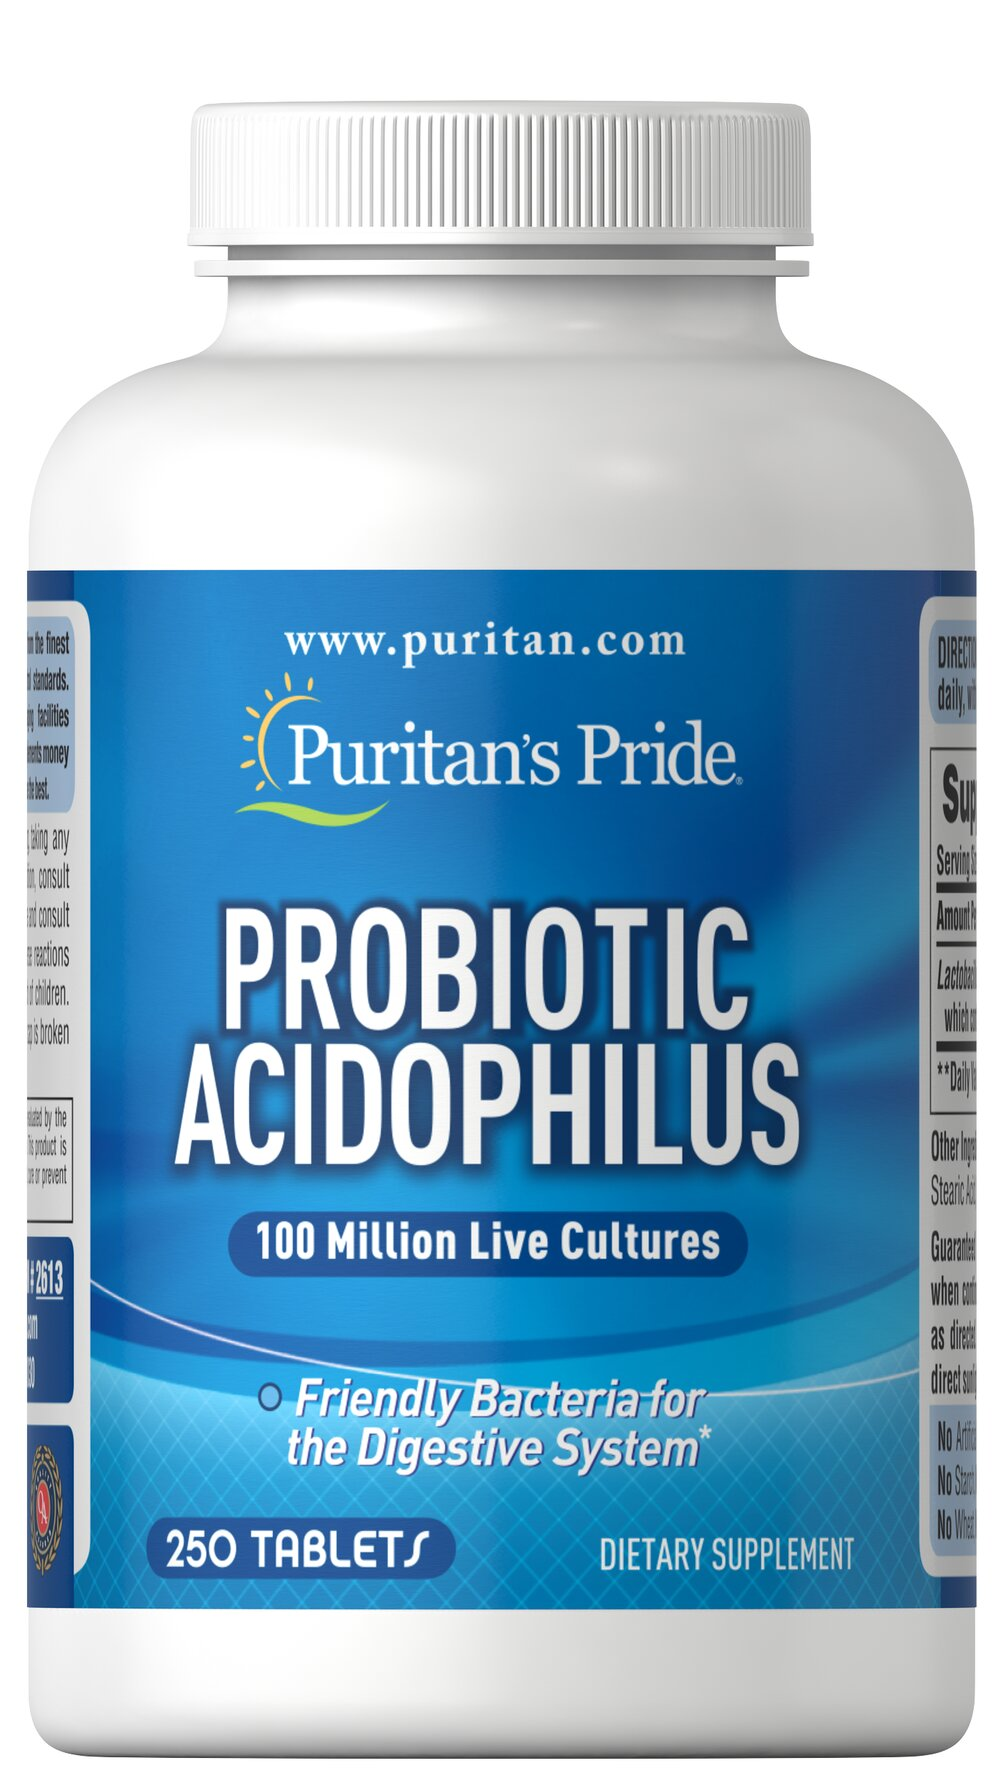 Probiotic Acidophilus <p>Acidophilus is a friendly bacteria naturally found in the intestinal tract.** More than 400 species of bacteria, also called normal flora, live in the adult human GI tract.  Our Probiotic Acidophilus contains over 100 million active Lactobacillus Acidophilus (including the naturally occurring metabolic product produced by Lactobacilli) at the time of manufacture. Adults can take one (1) capsule daily, preferably with a meal.</p> 250 Capsules  $13.29